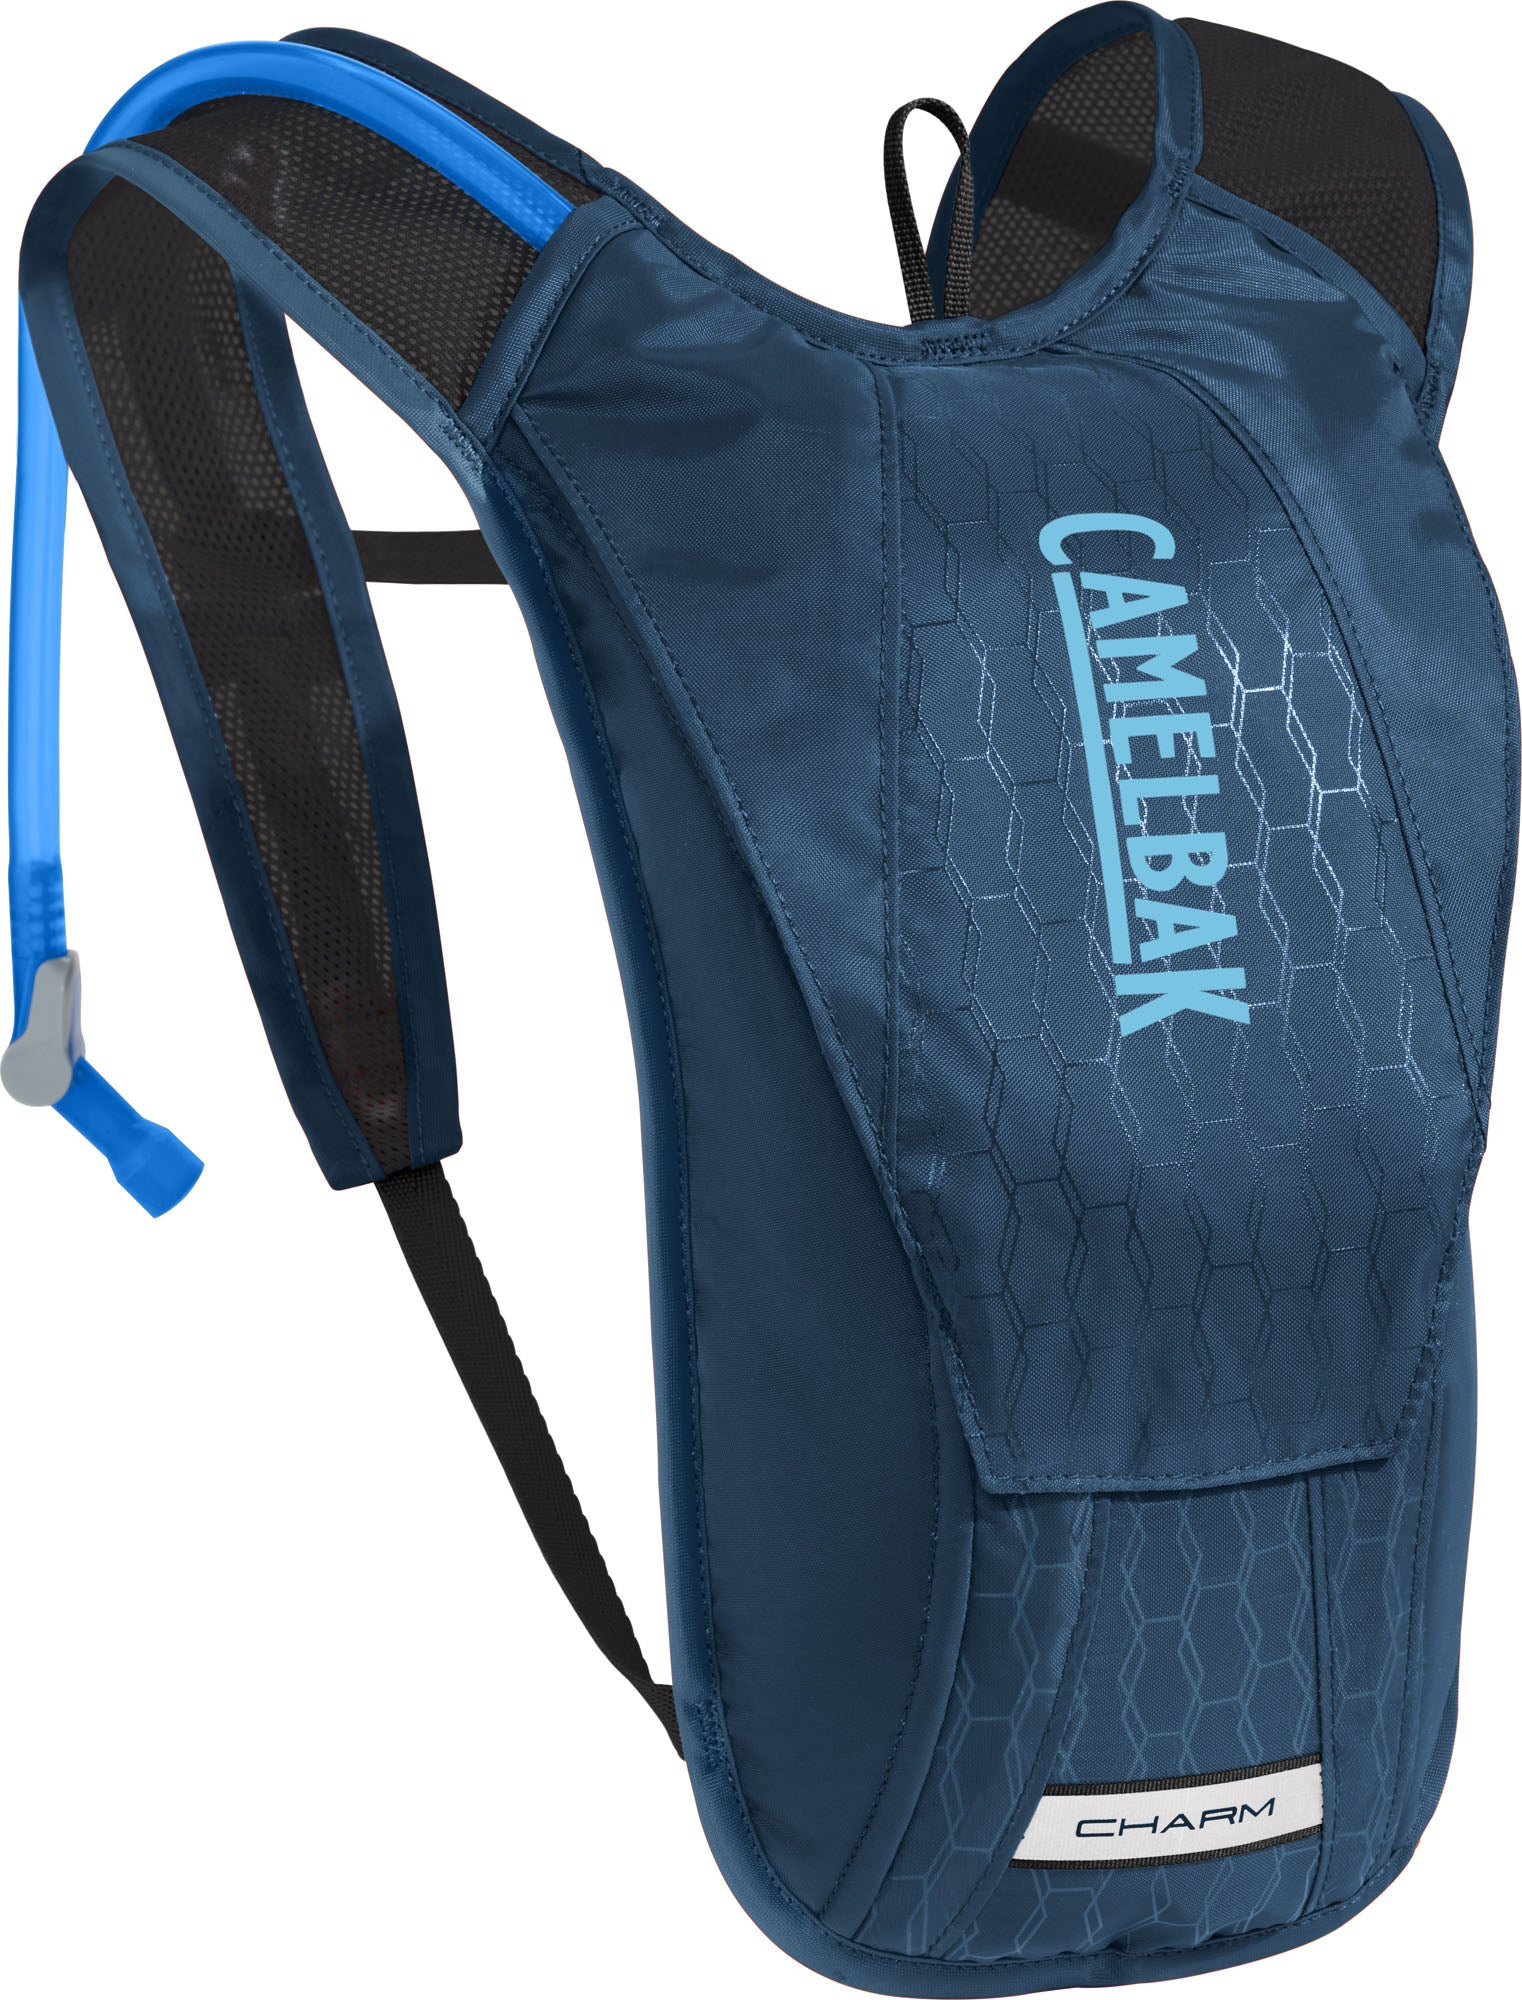 CamelBak Charm Womens Hydration Pack 50oz